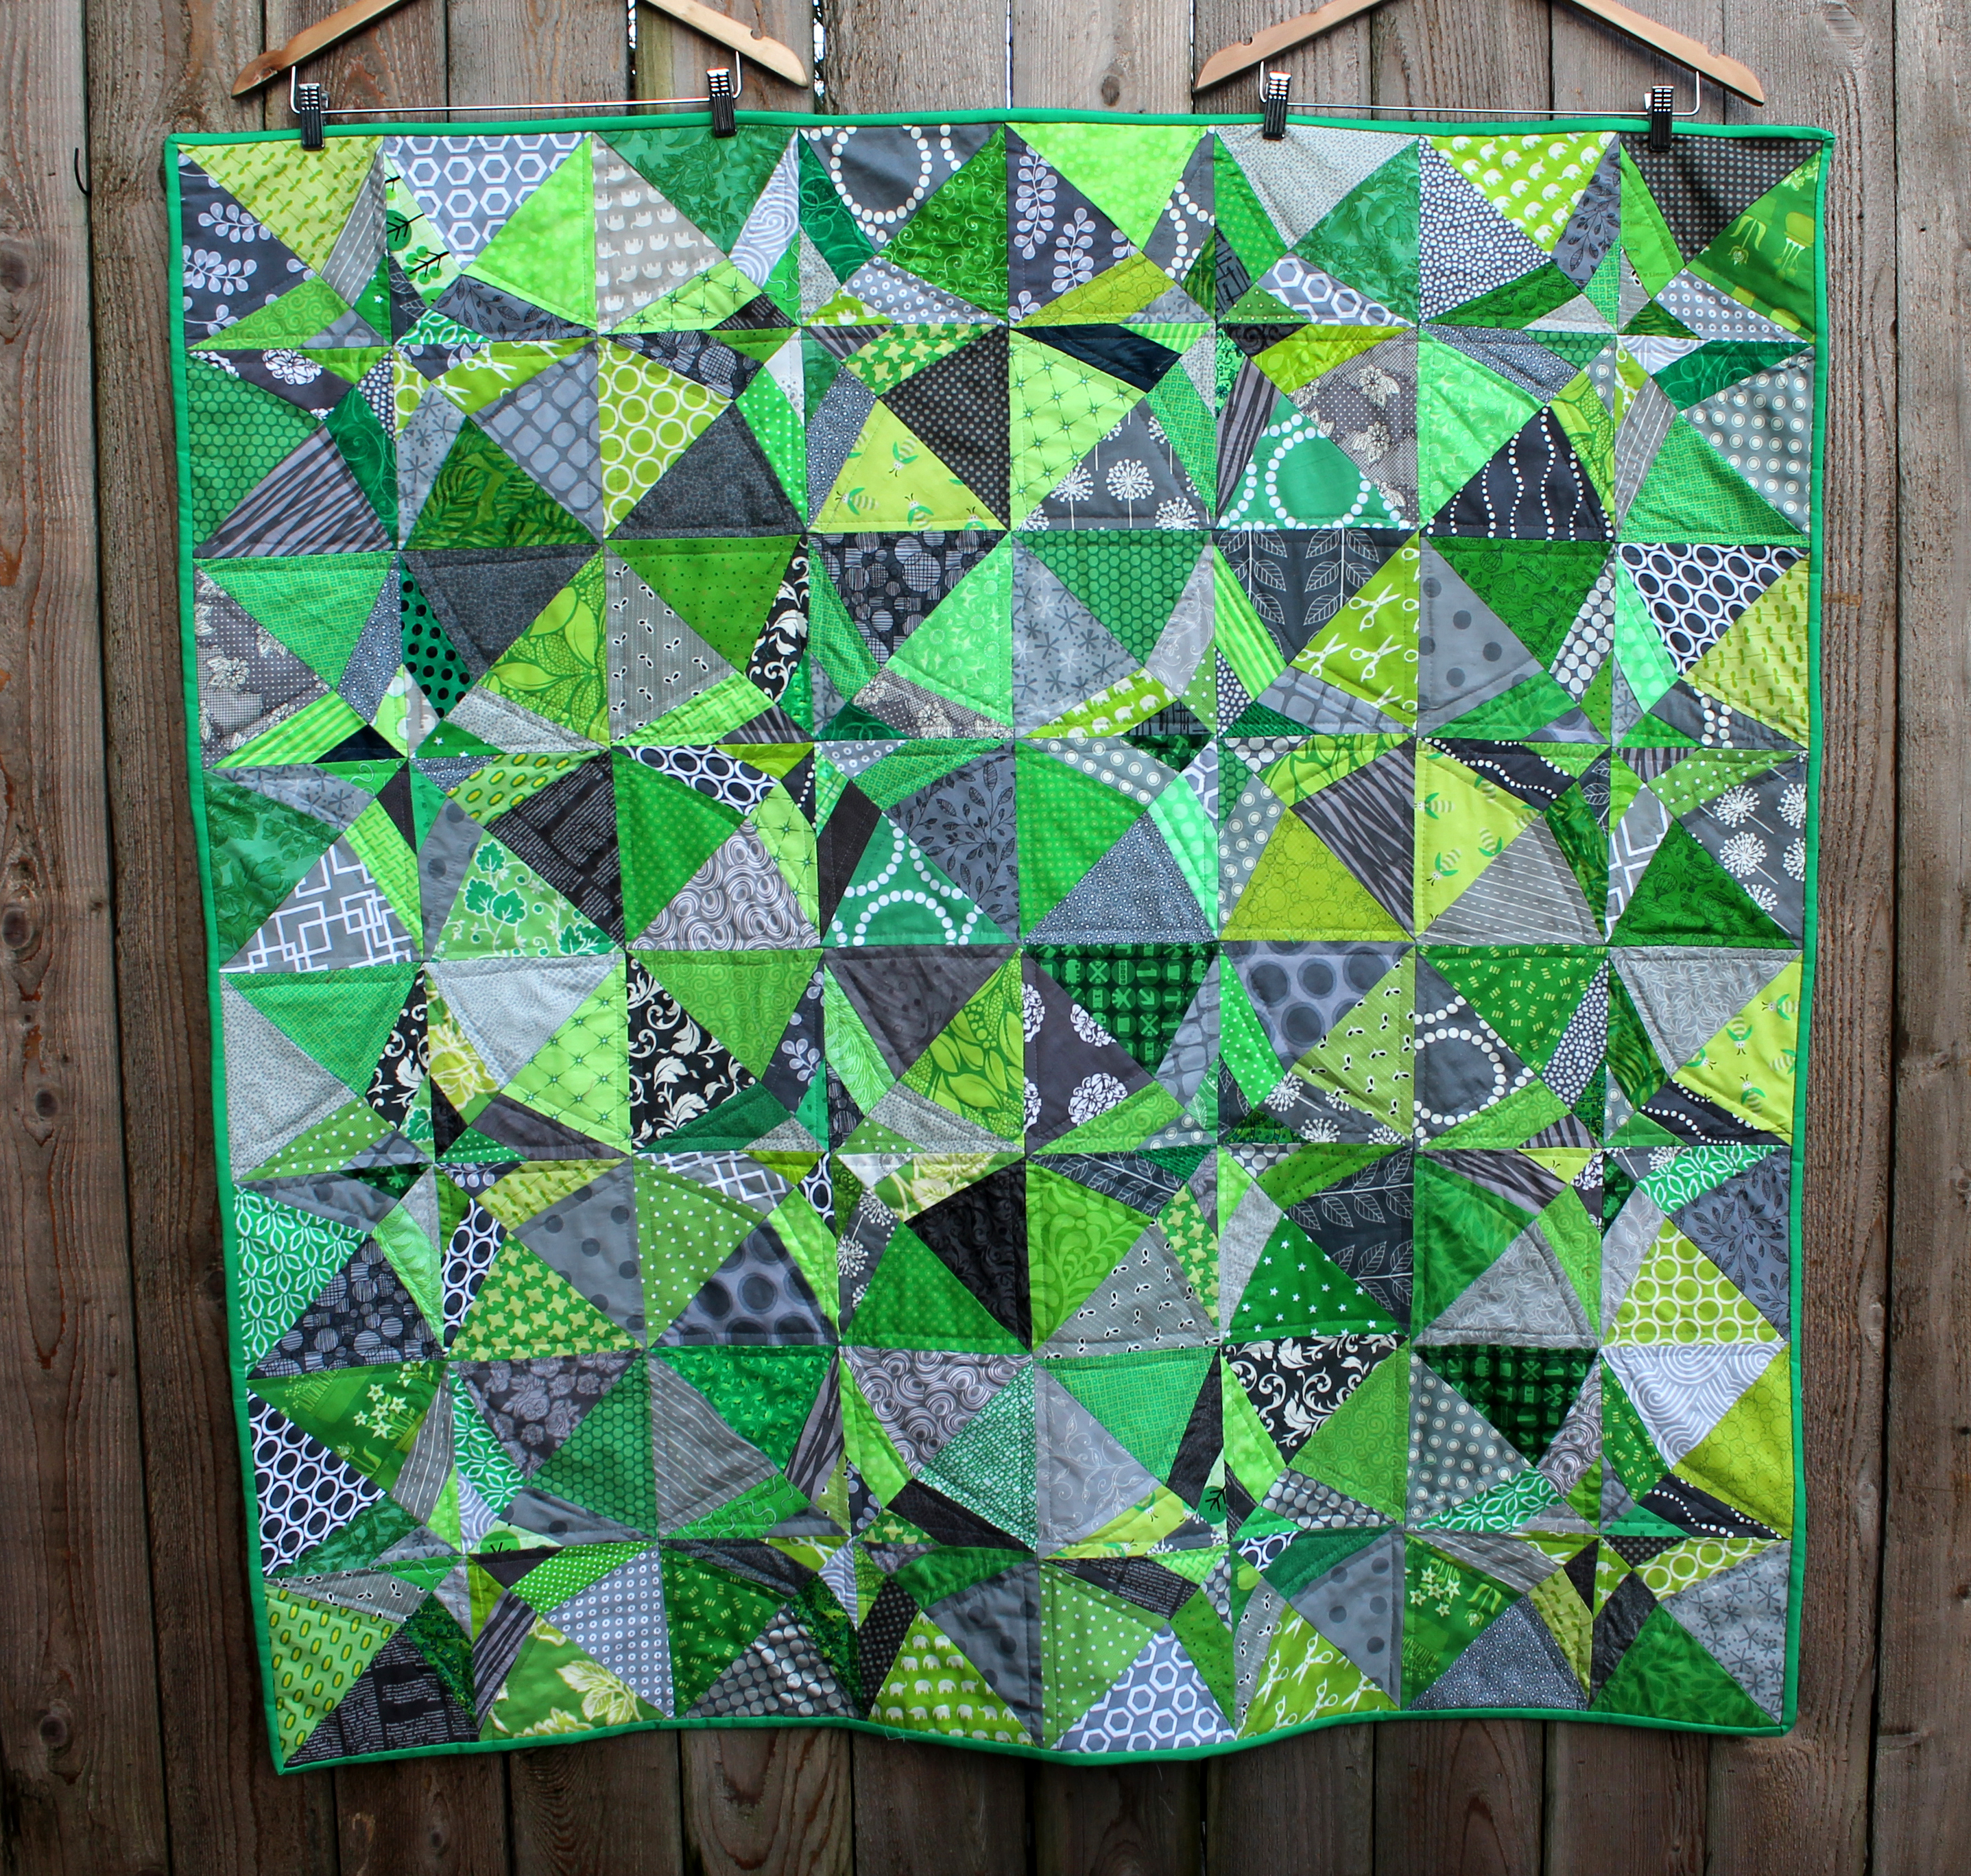 quilt really wild o i s made and very qui homes the have a green henry